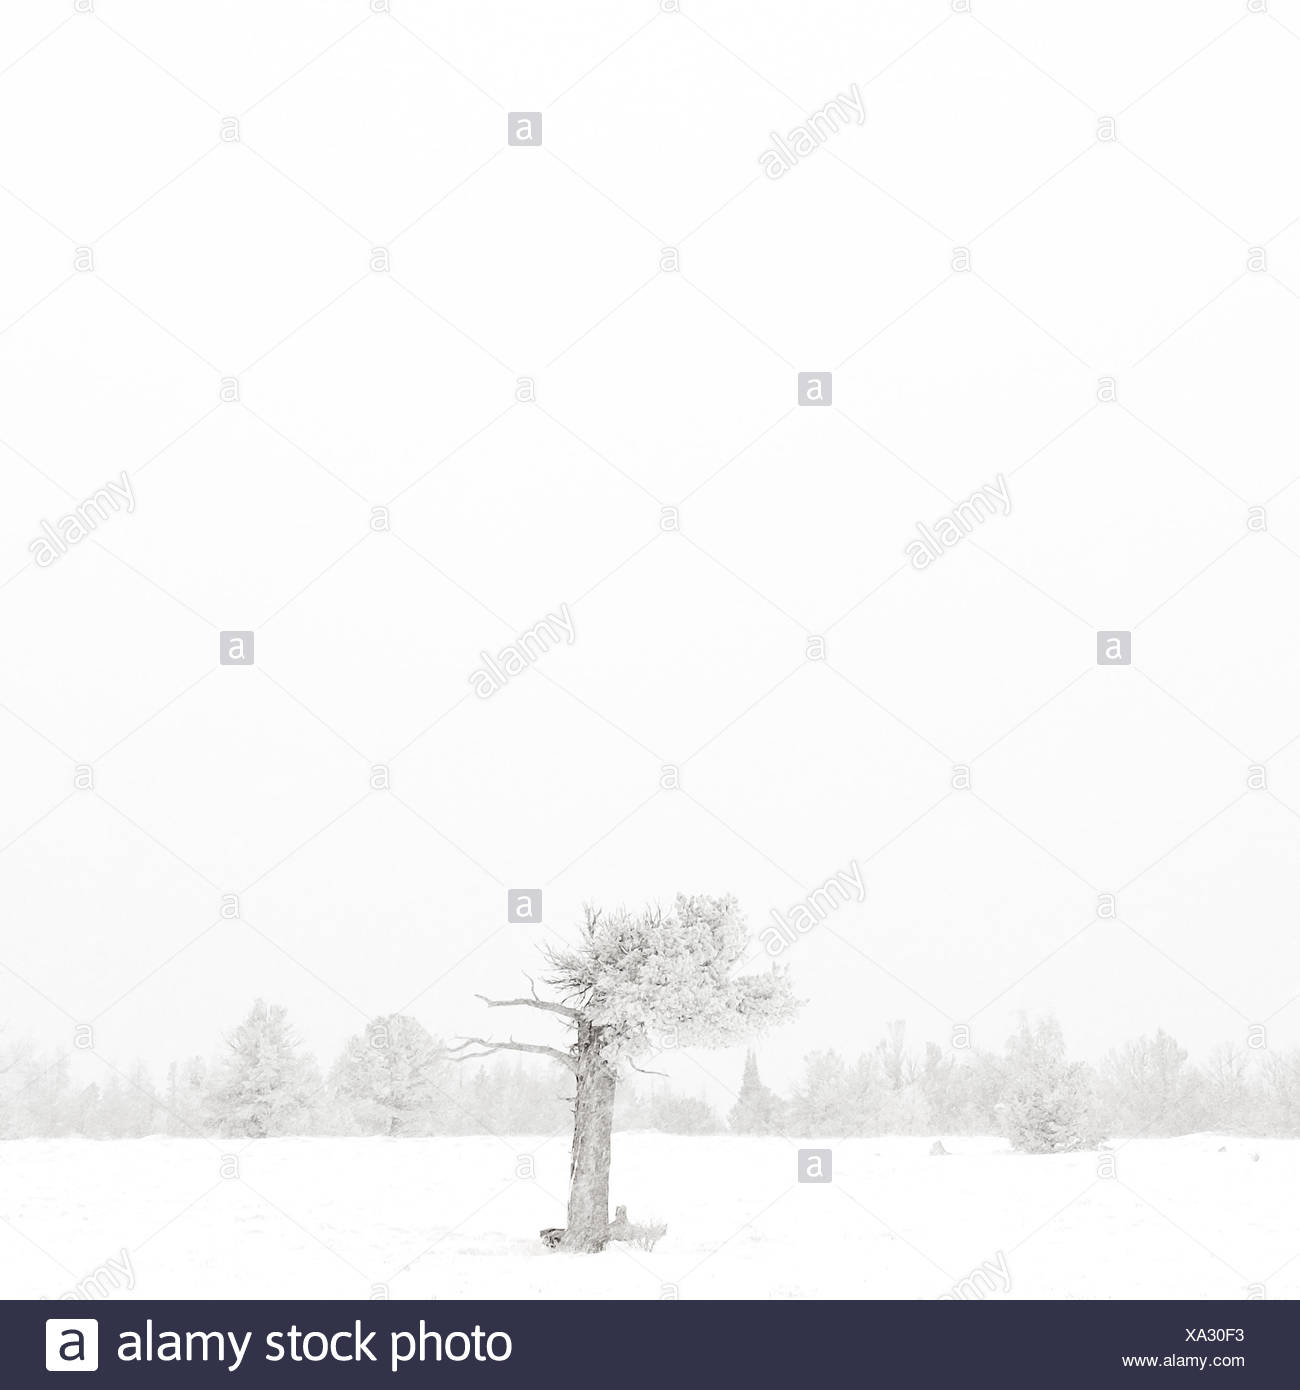 USA, Wyoming, Albany County, Laramie, Tree in snow covered landscape - Stock Image